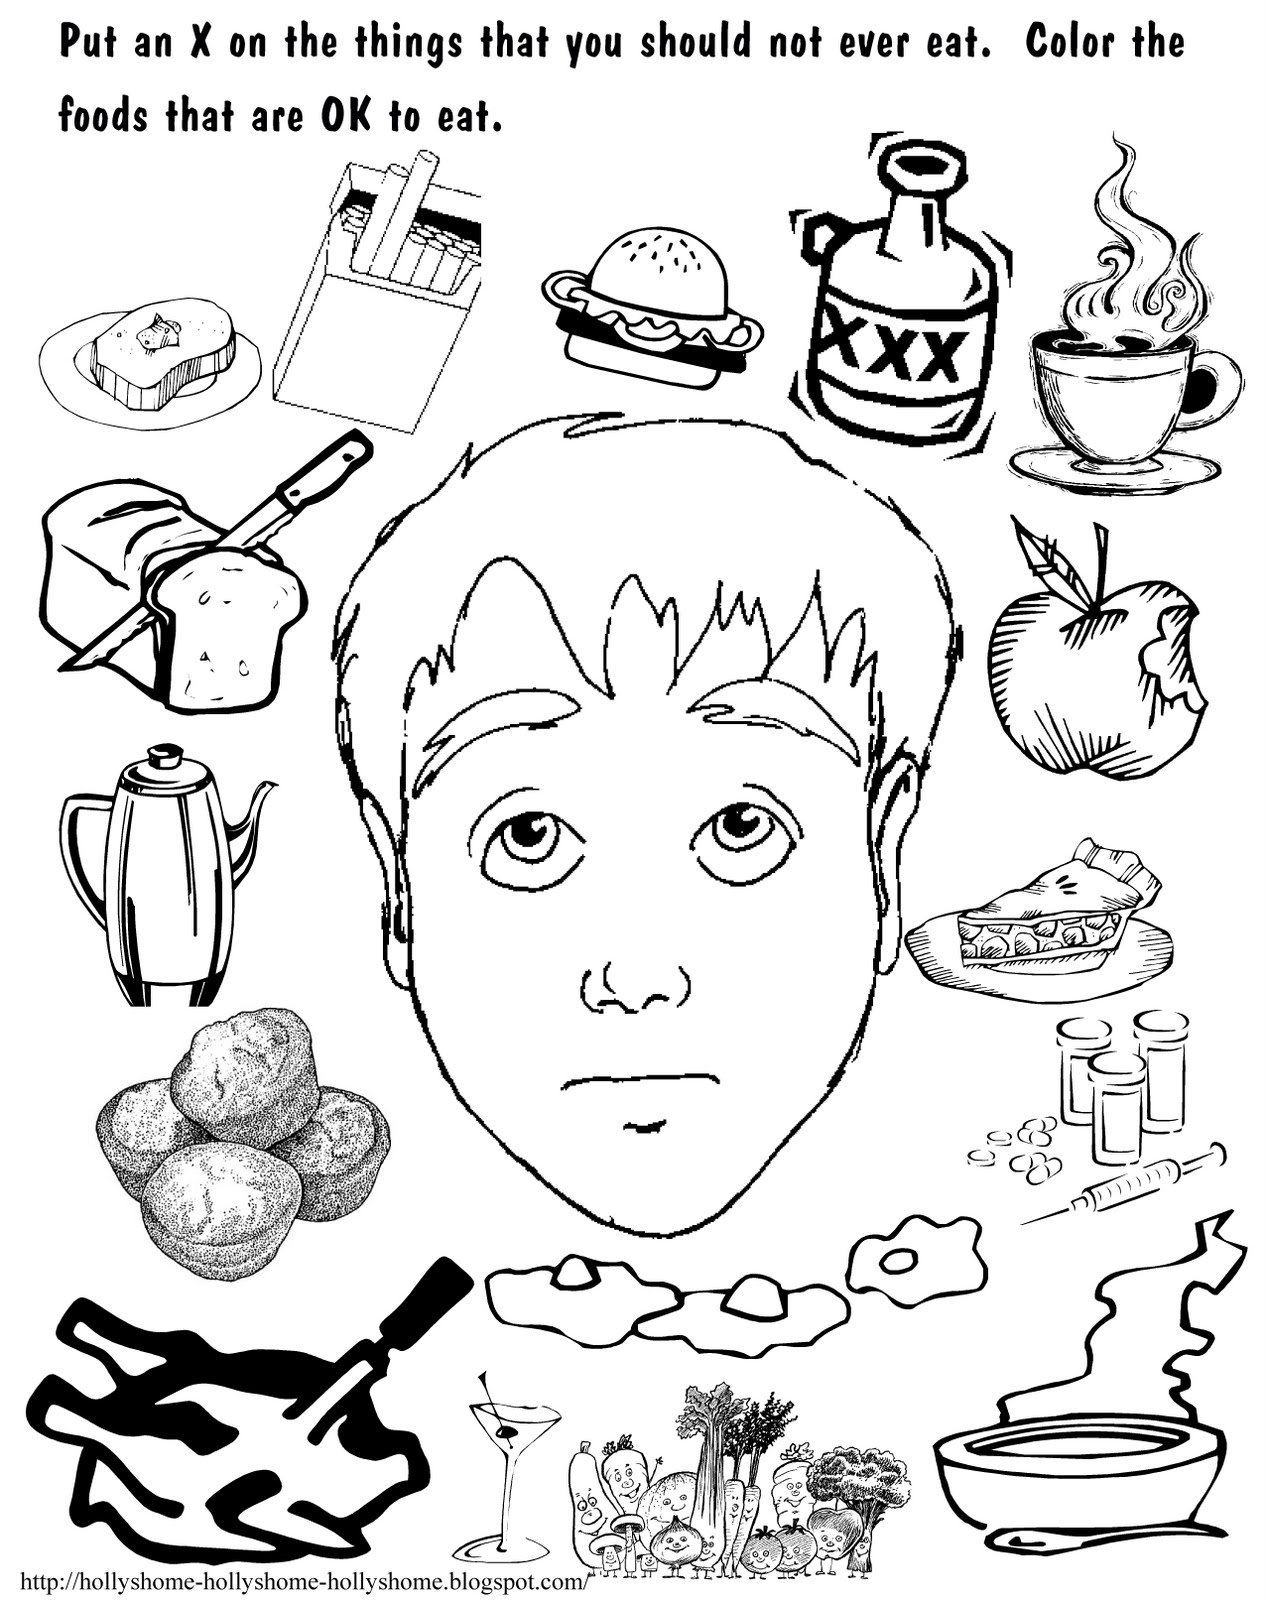 word of wisdom coloring page - 2011 06 01 archive